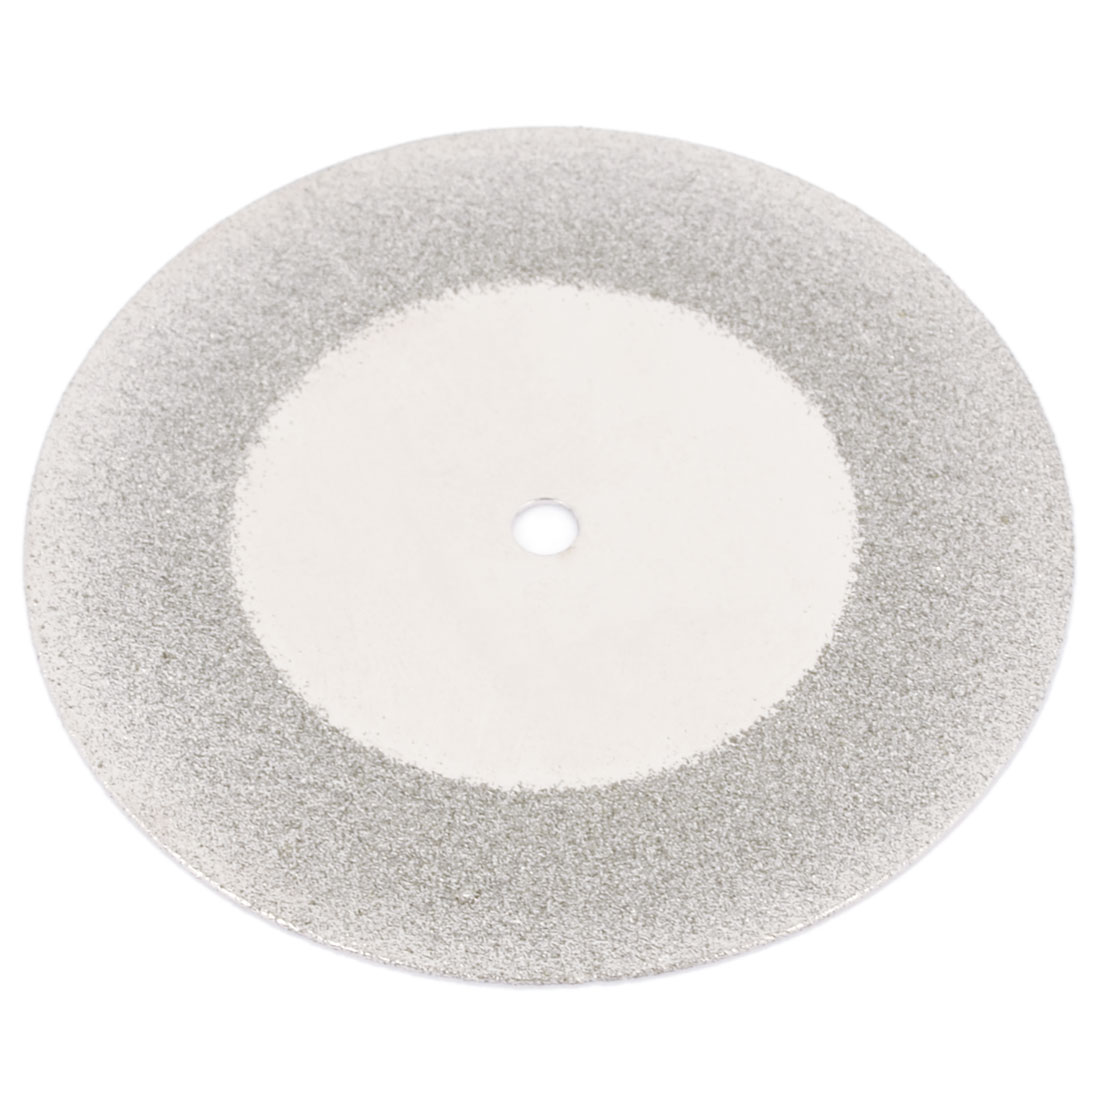 Silver Tone 50mm Dia Diamond Coated Glass Grinding Cutting Cut-off Wheel Disc